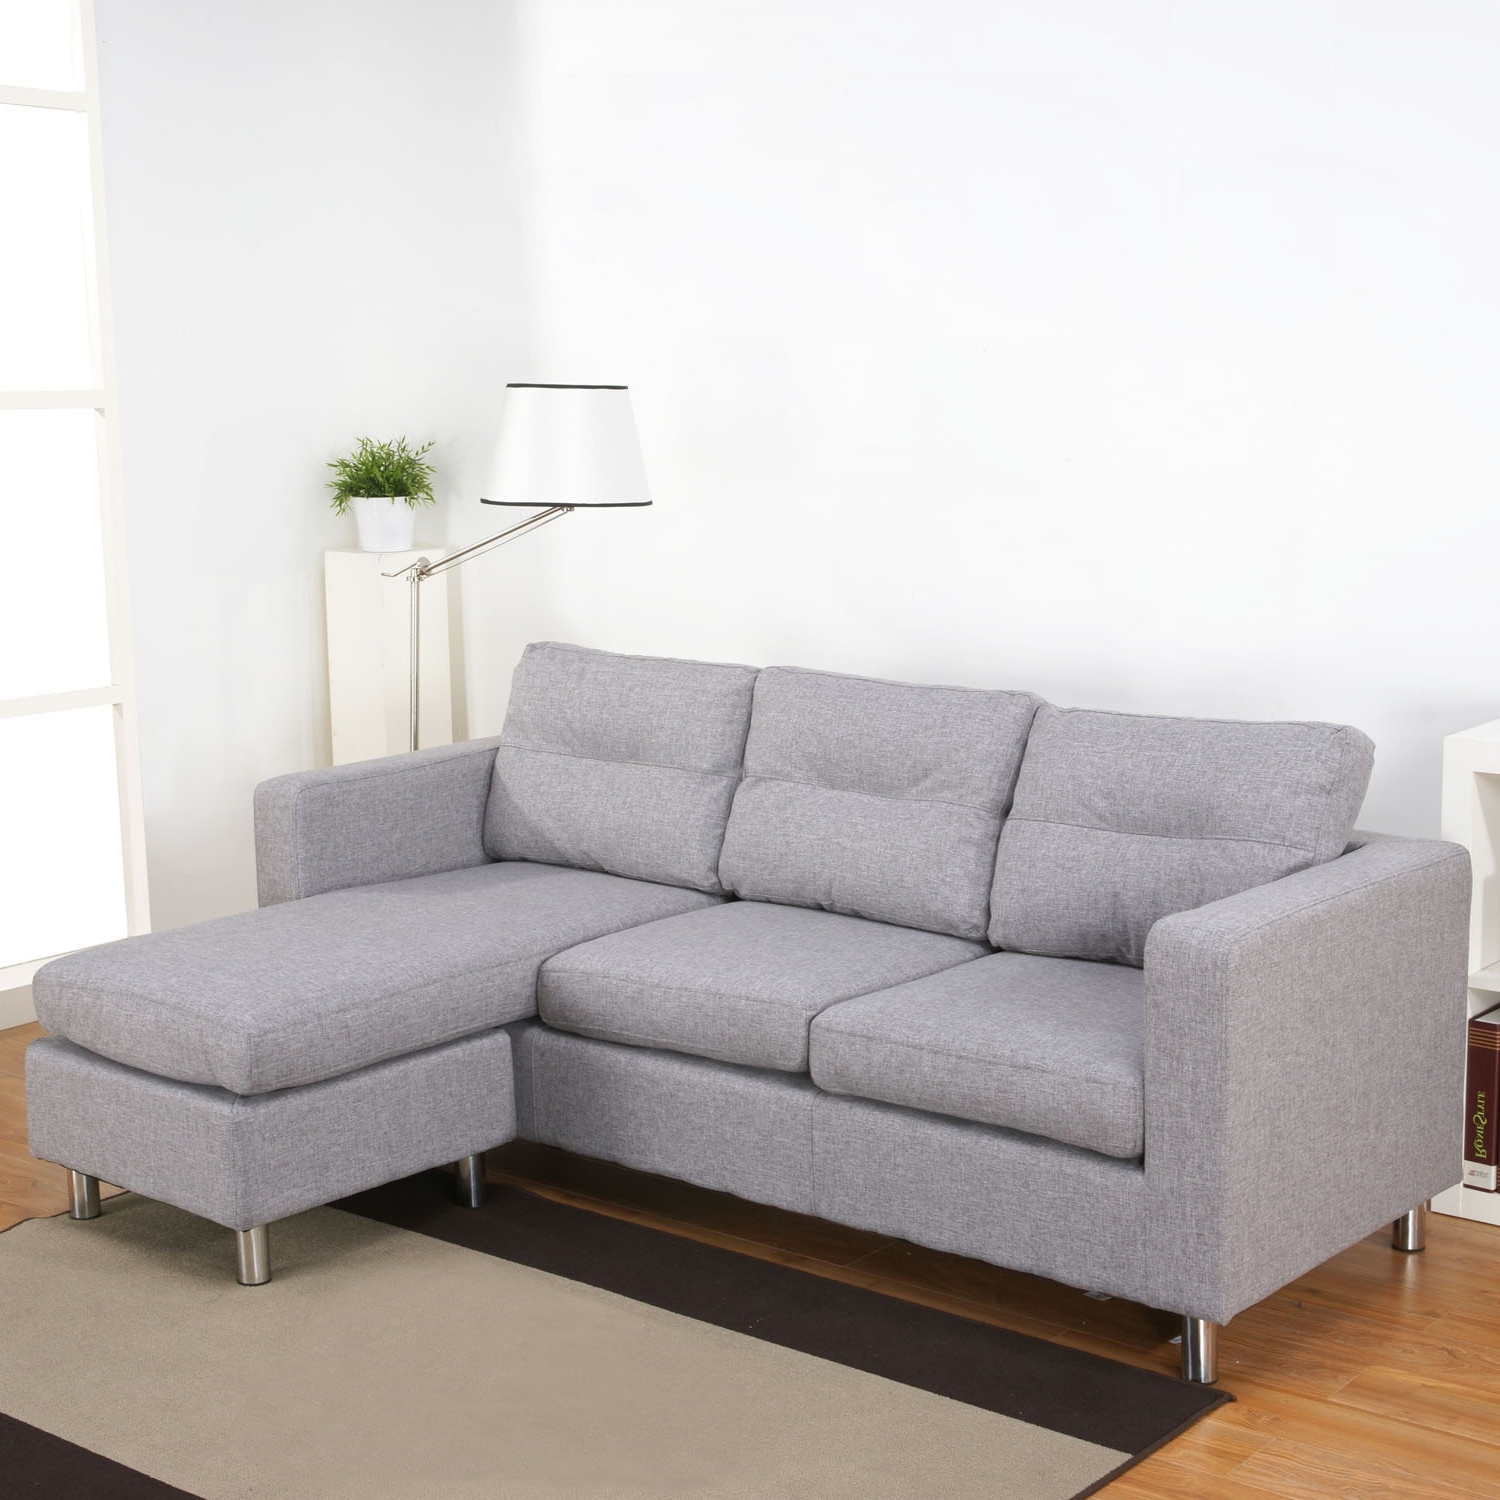 Best And Newest Gray Couches With Chaise With Regard To Gray Sectional Sofas With Chaise (View 4 of 15)